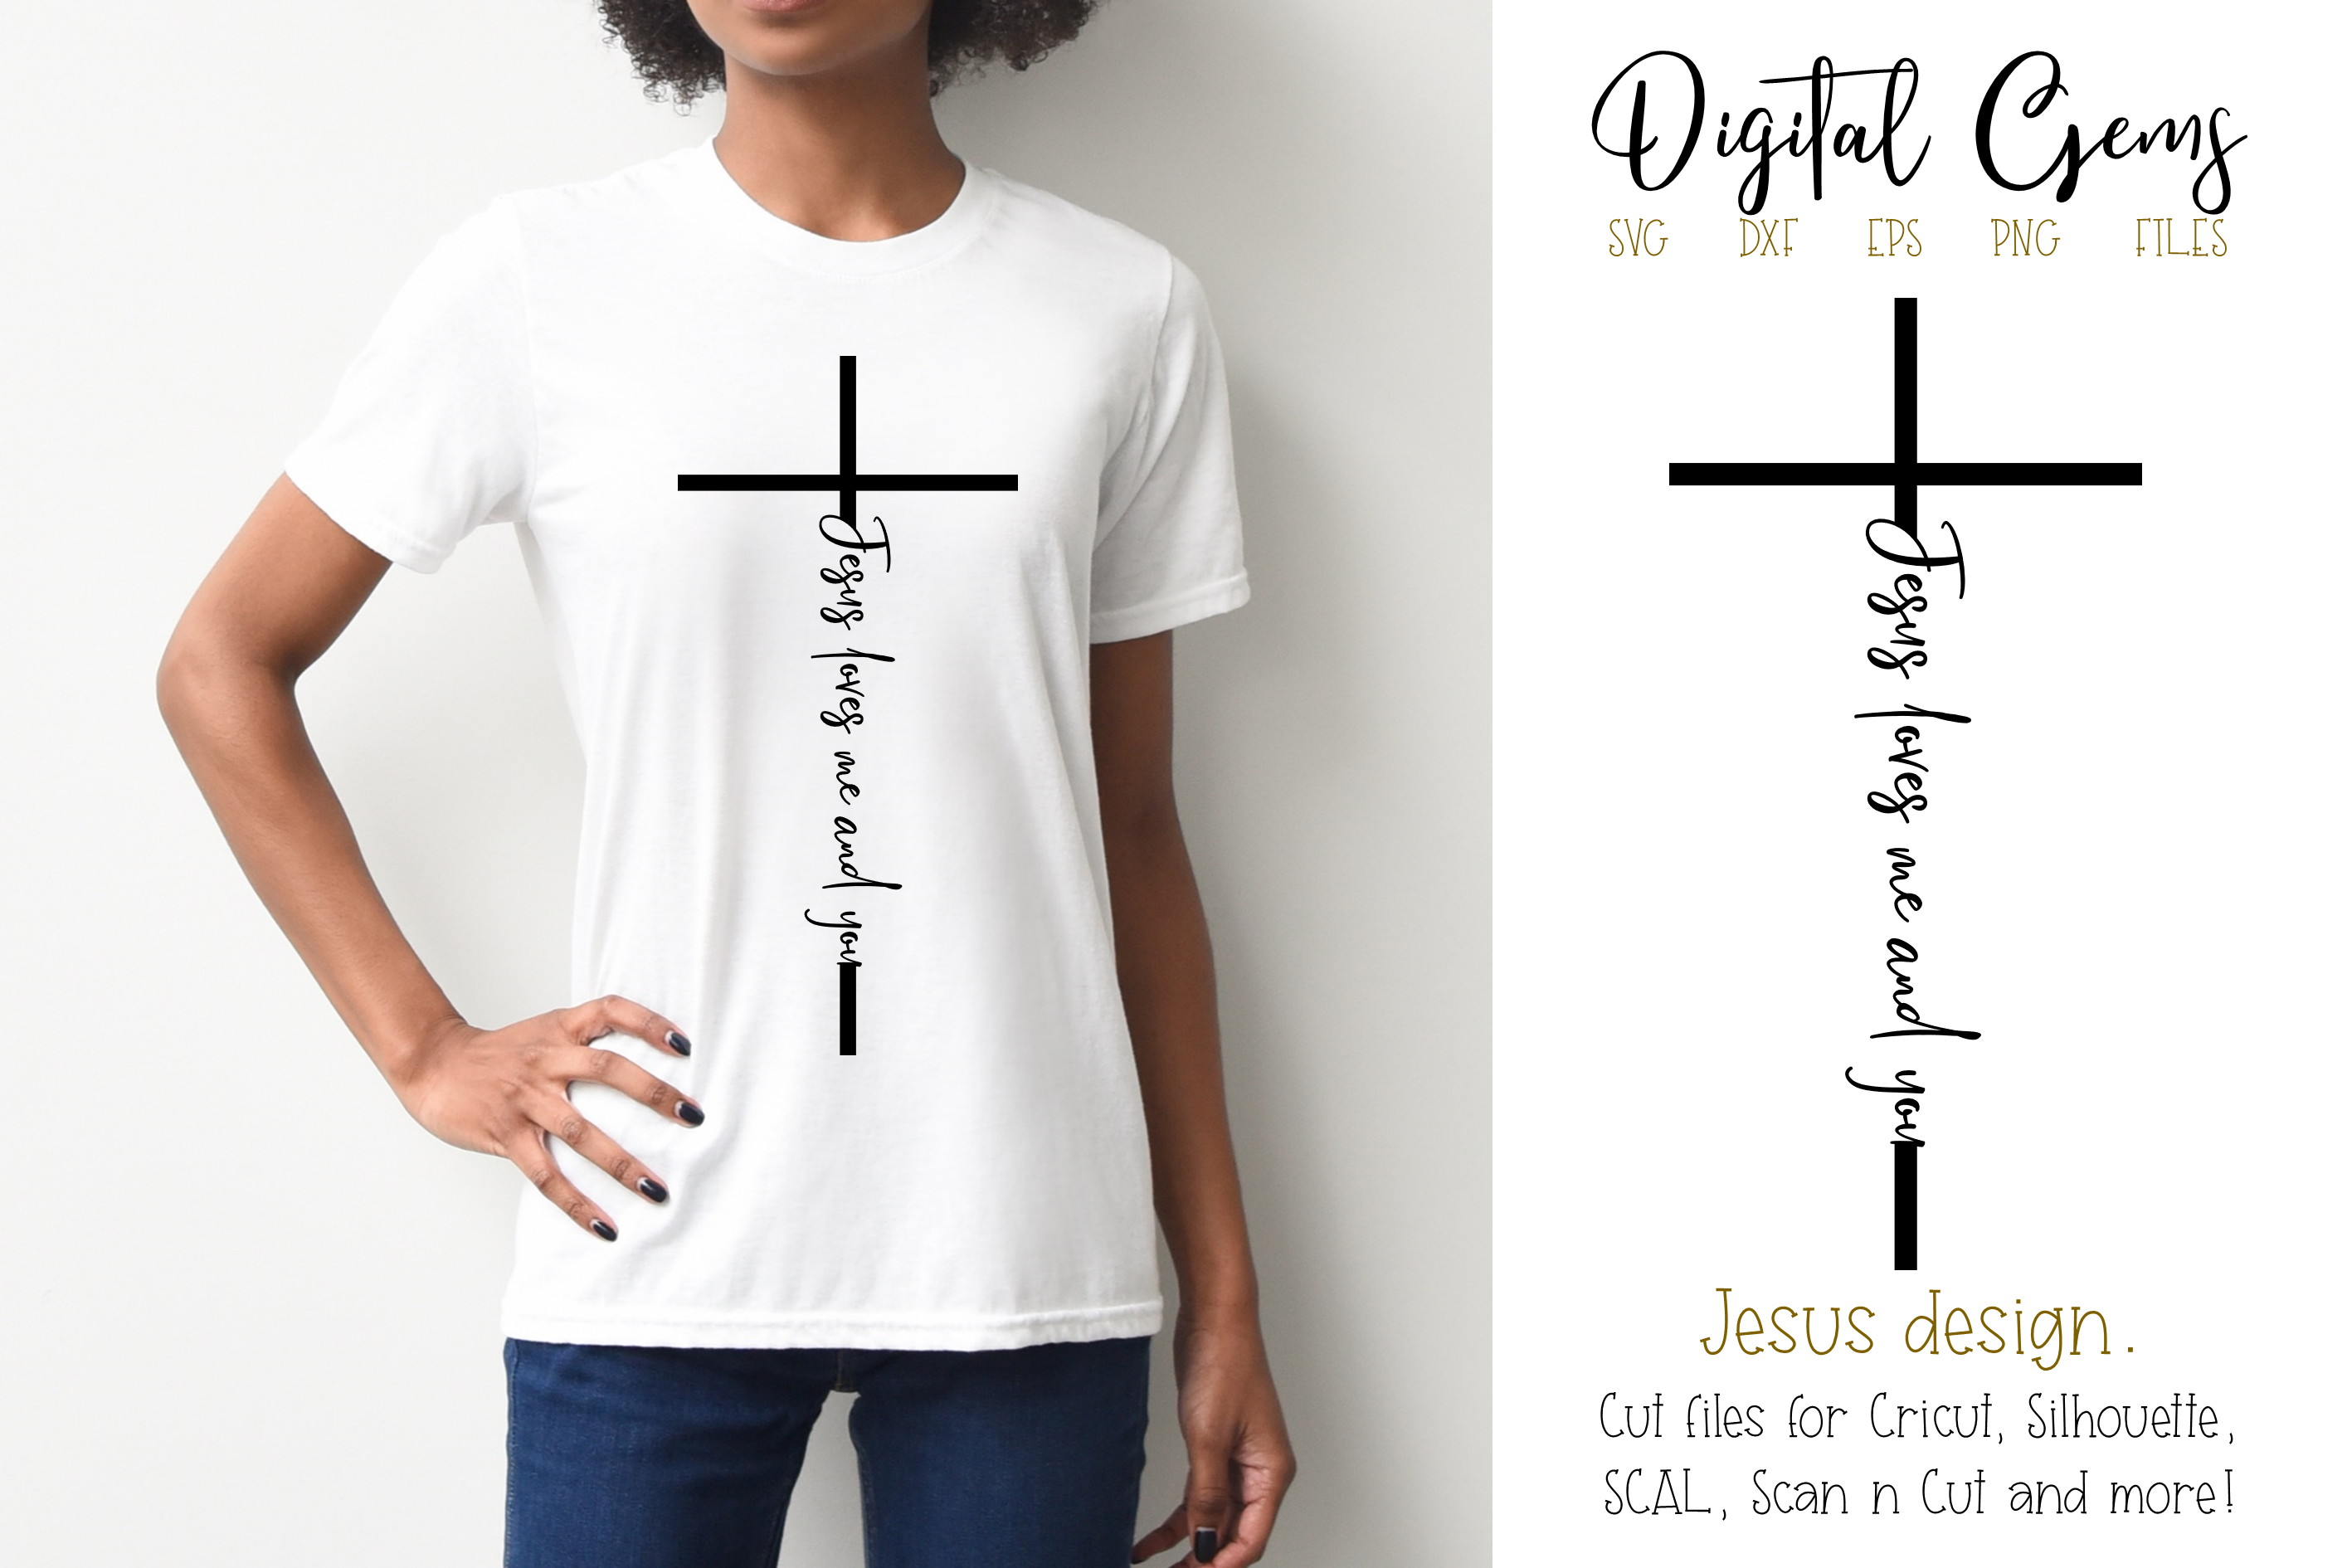 Jesus loves me and you SVG / PNG / EPS / DXF files example image 1